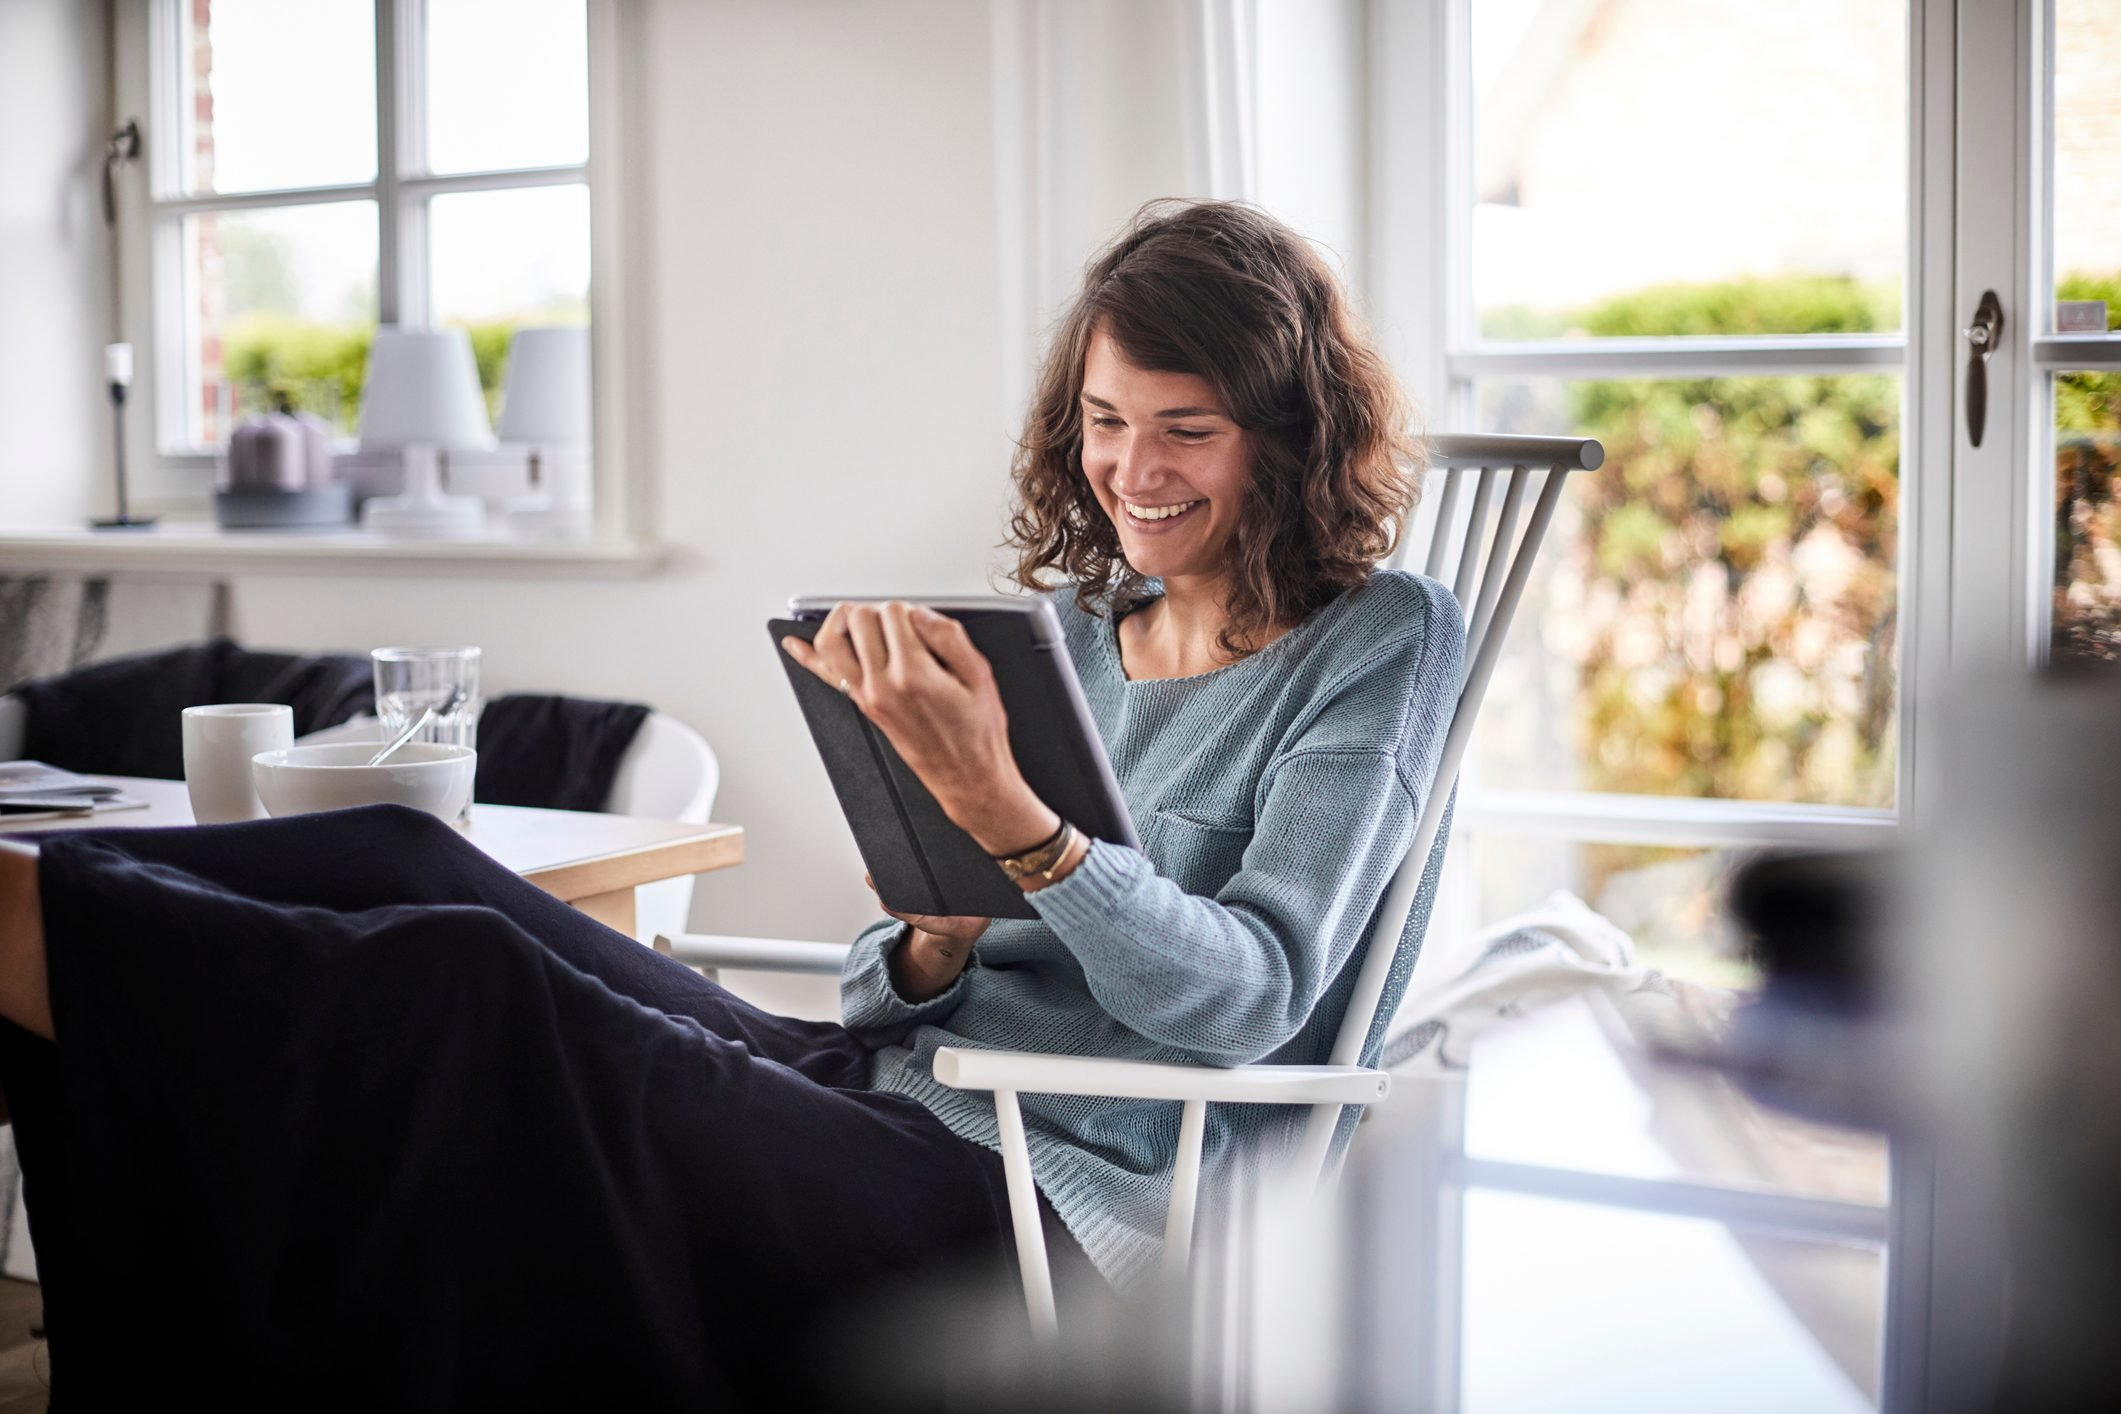 Relaxed young woman sitting at table using tablet